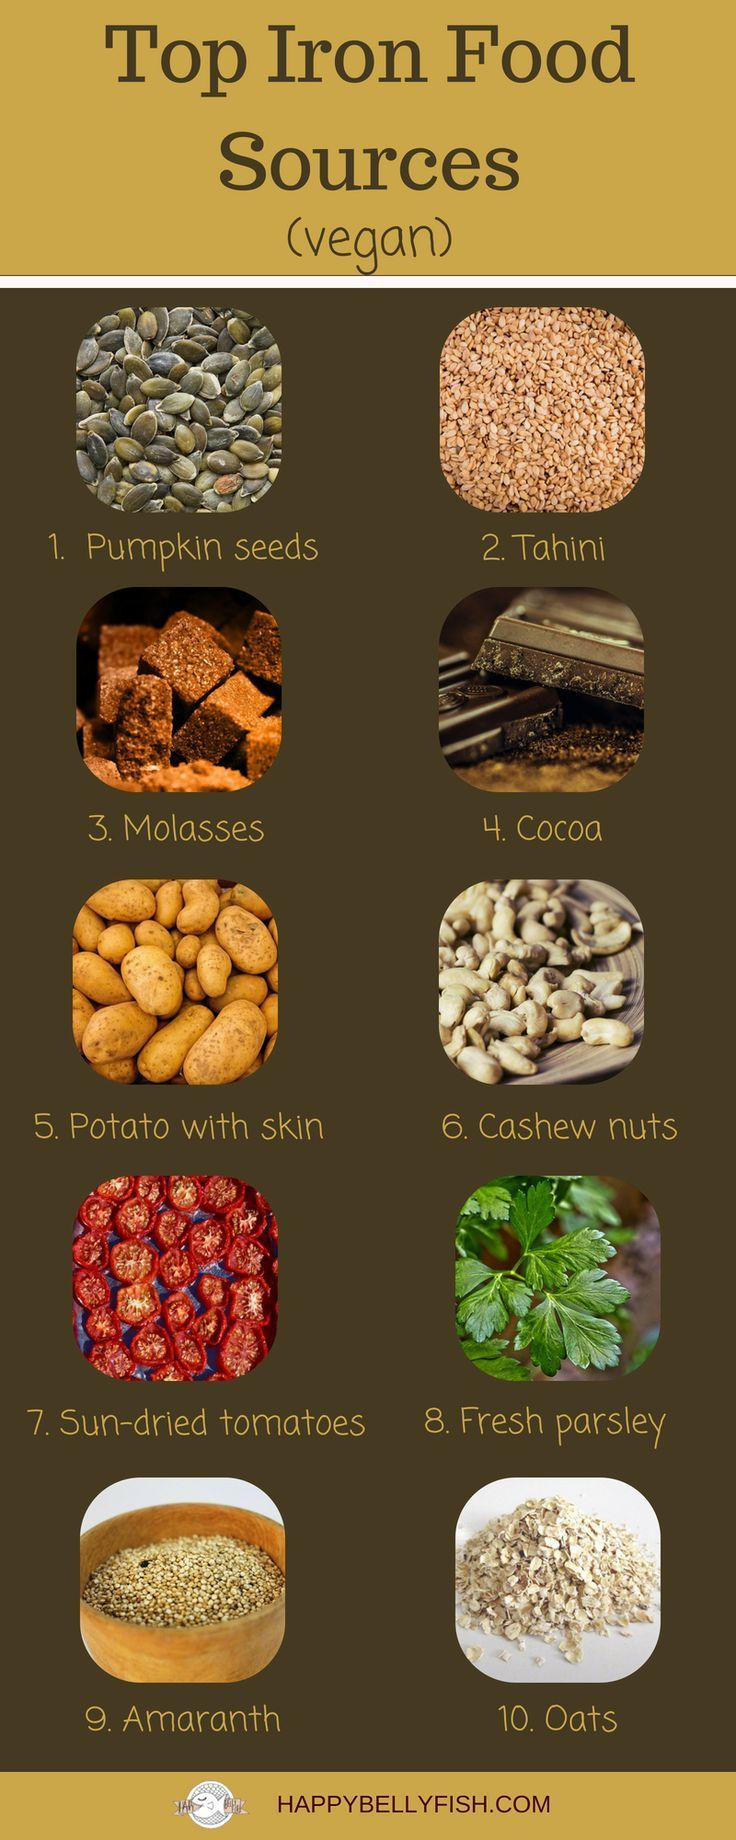 IronRich Foods for Vegans and Vegetarians How to Avoid